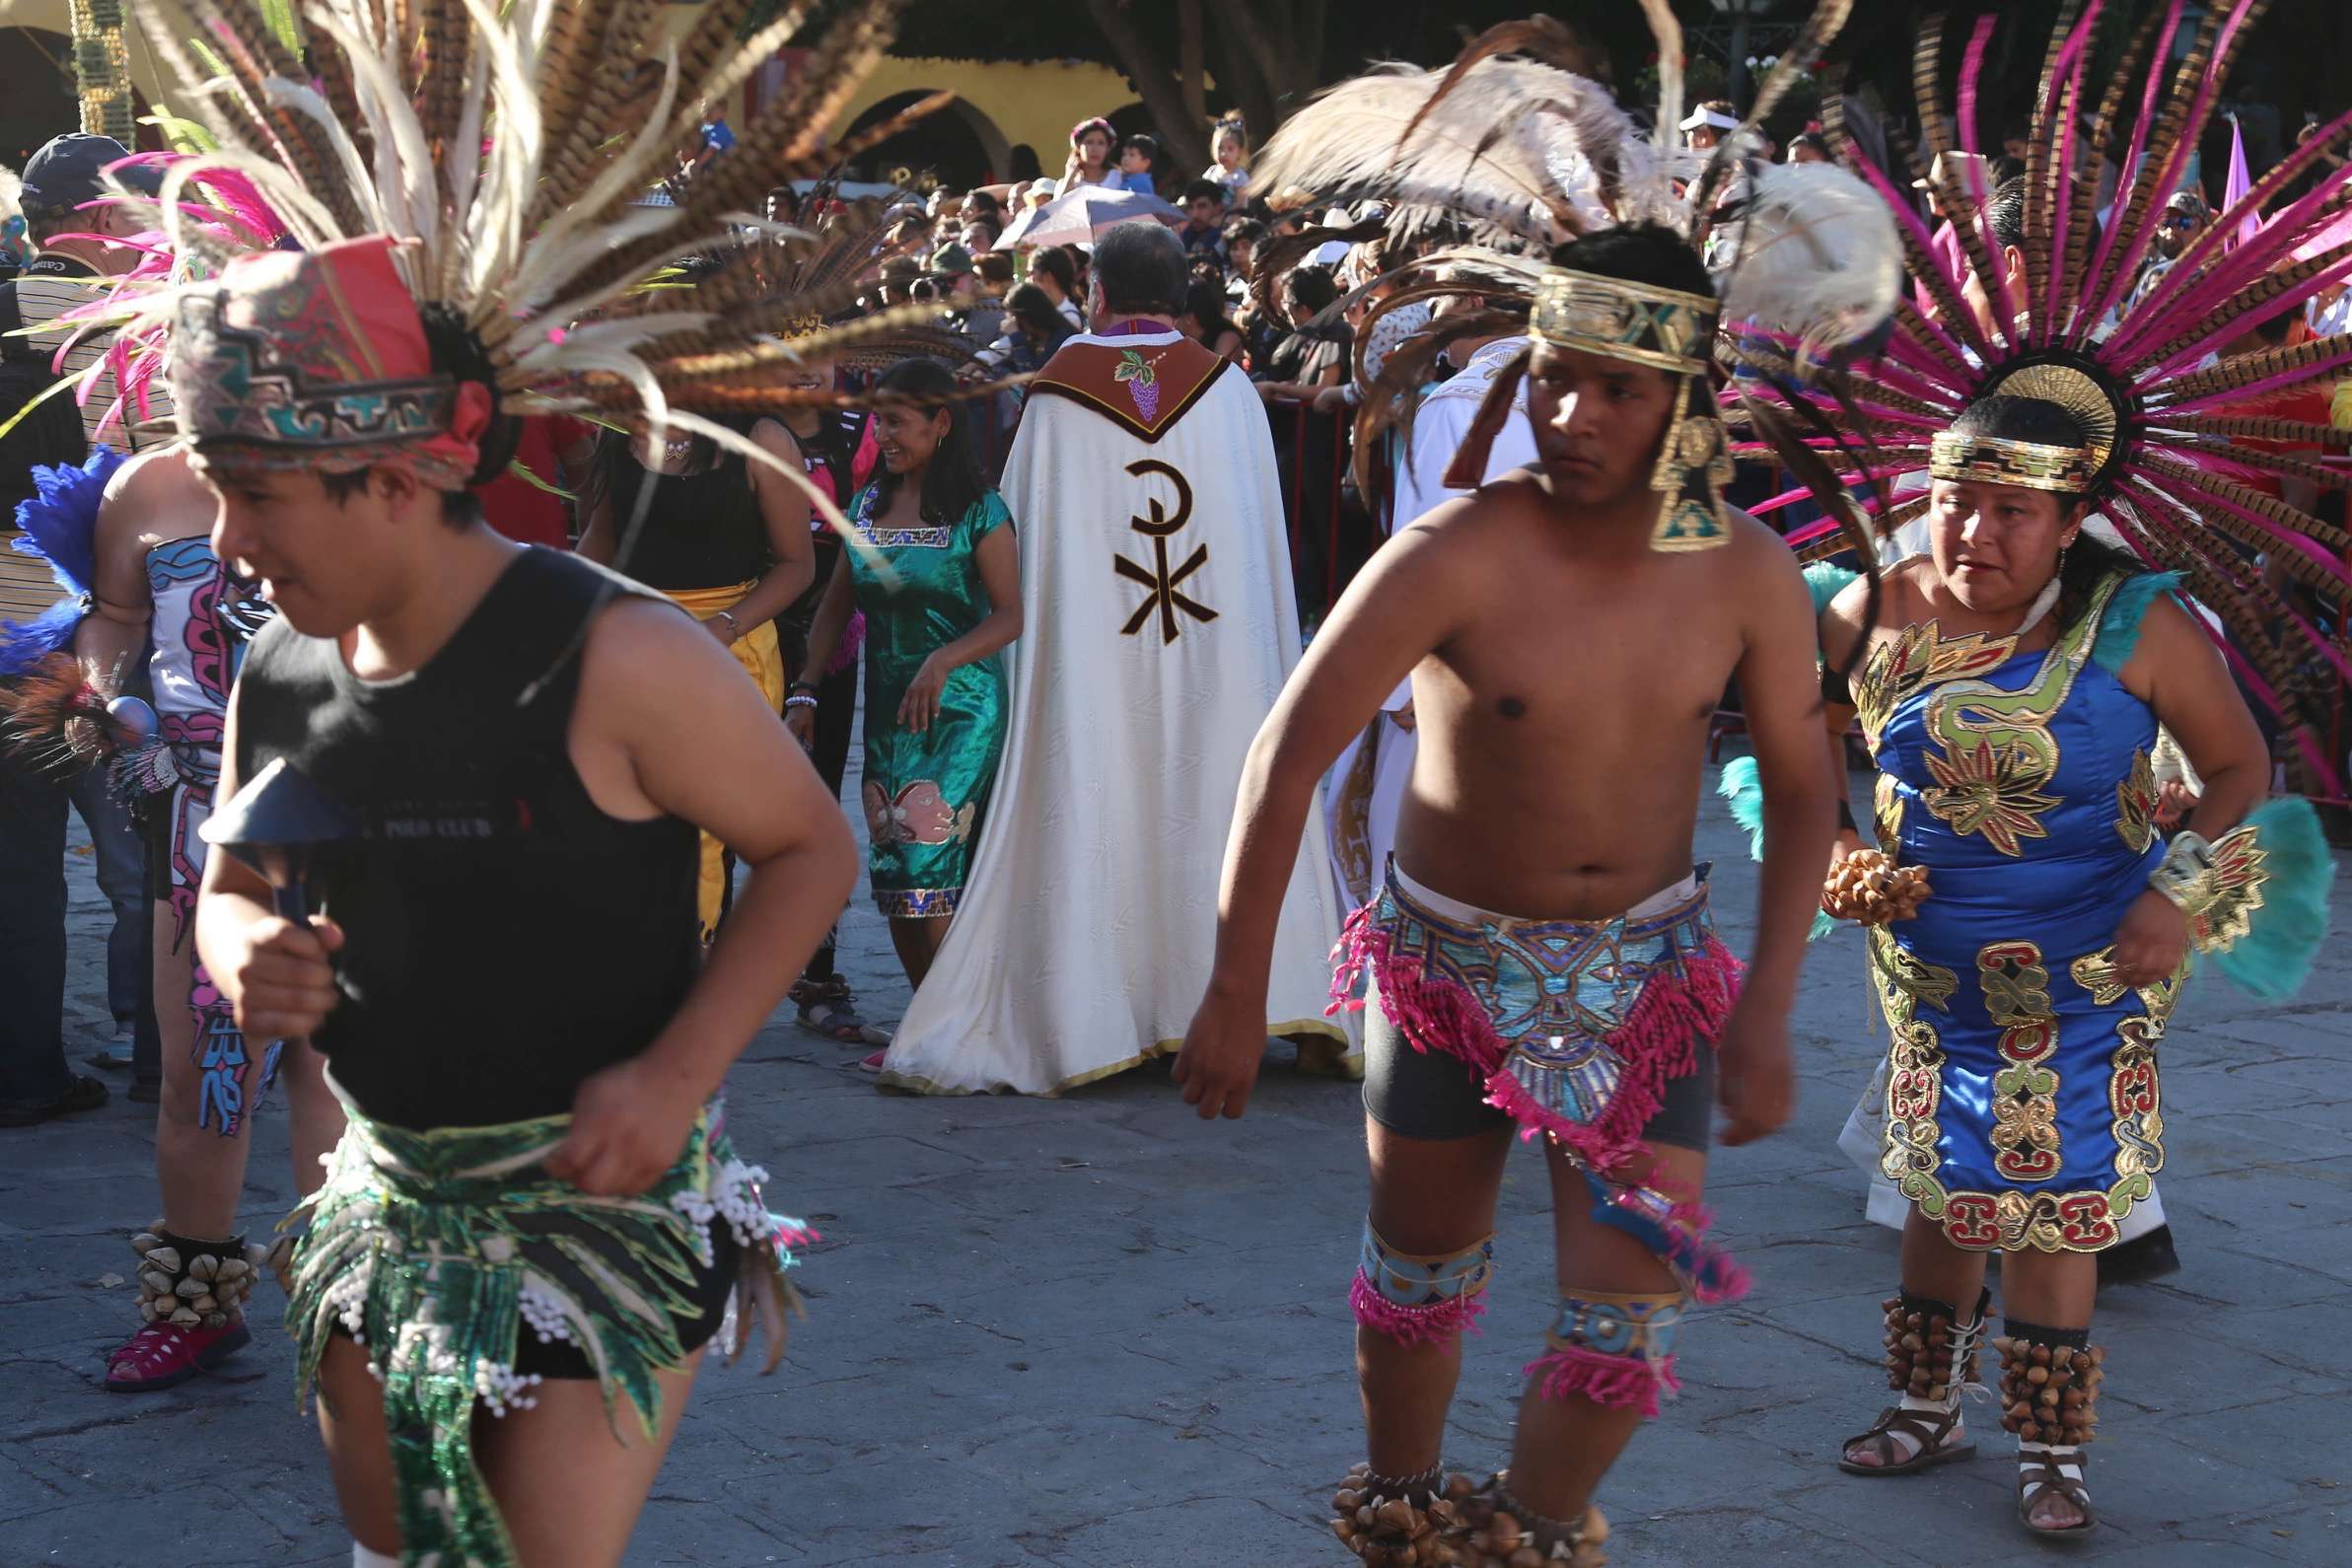 Mexico has many beliefs and they combine at times like these when a Catholic priest wades into a crowd of parade performers.